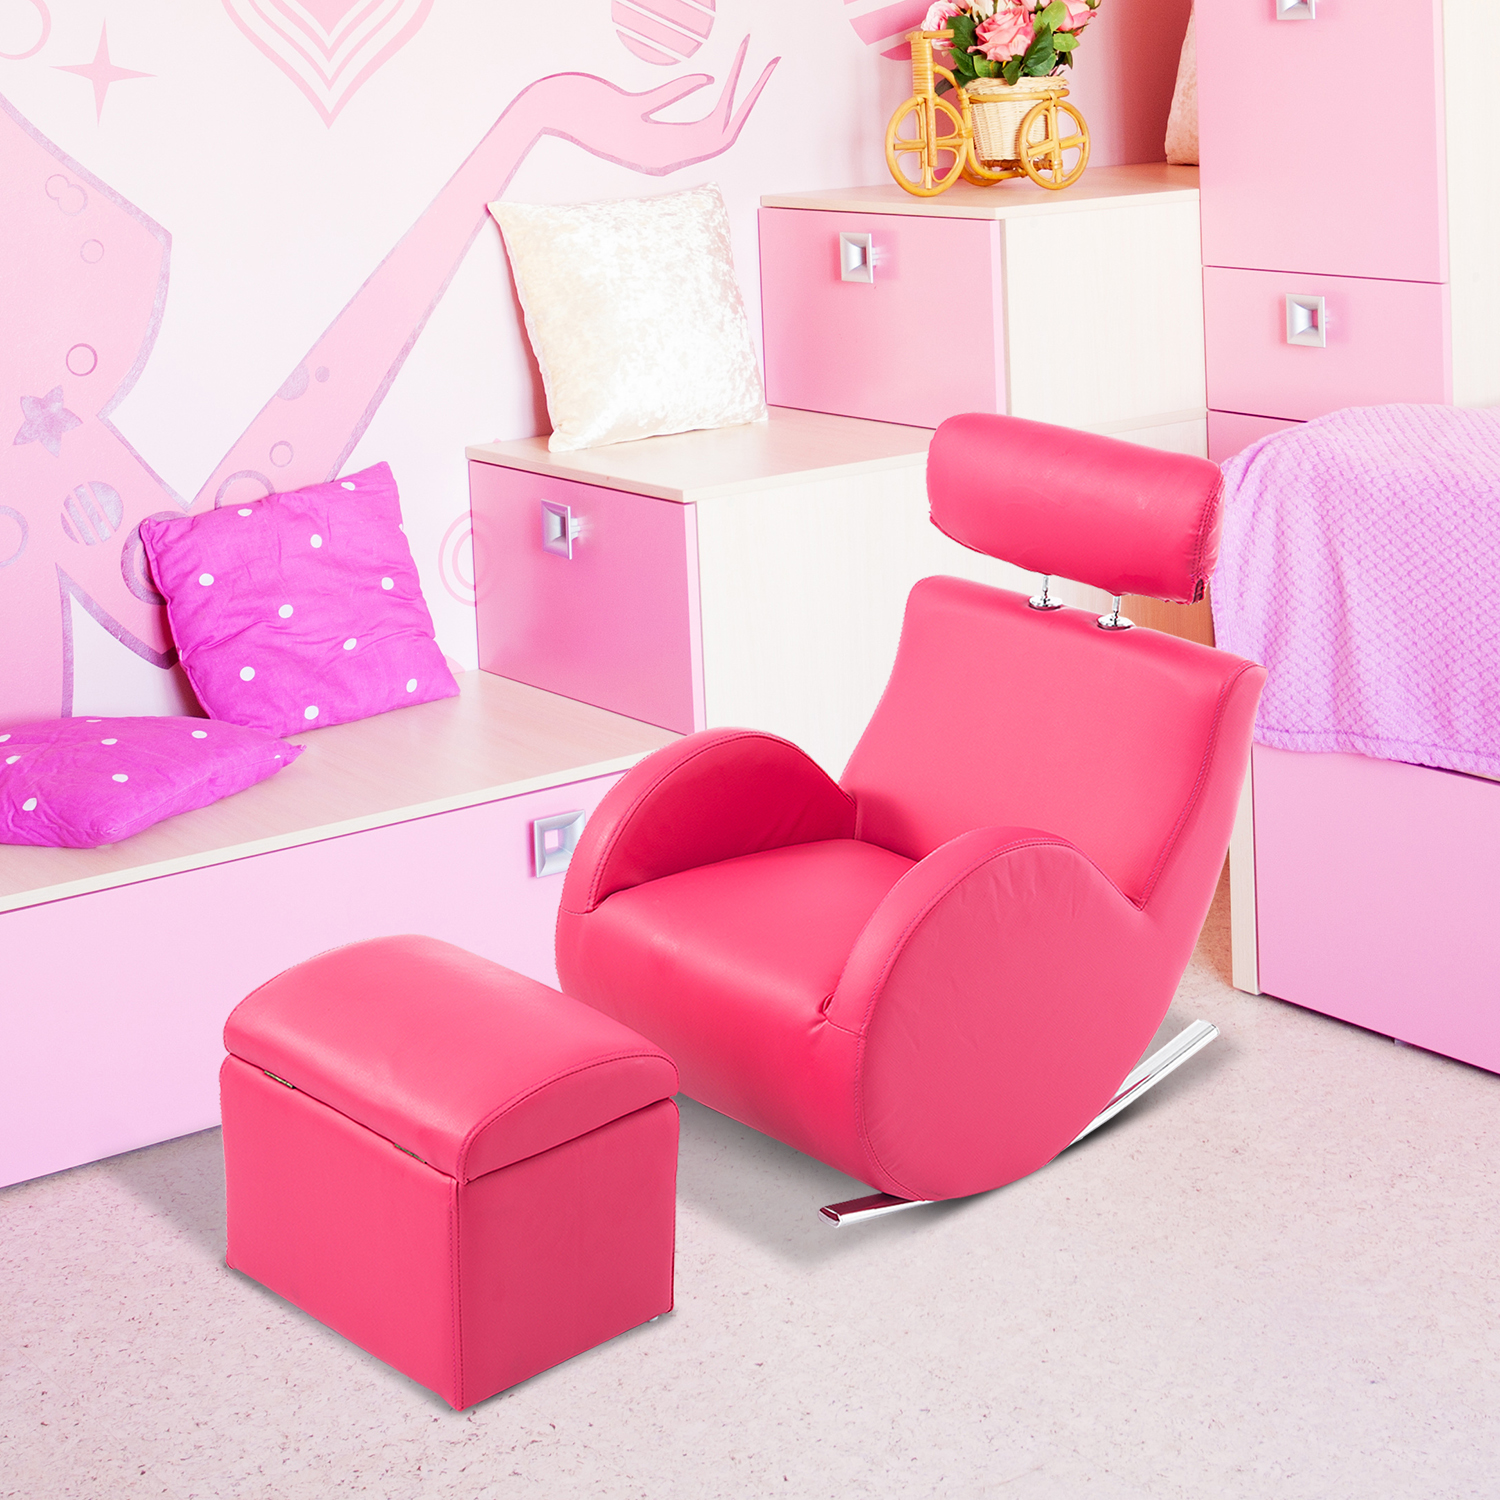 pink leather sofas sectional sofa with 2 recliners kids chair thesofa